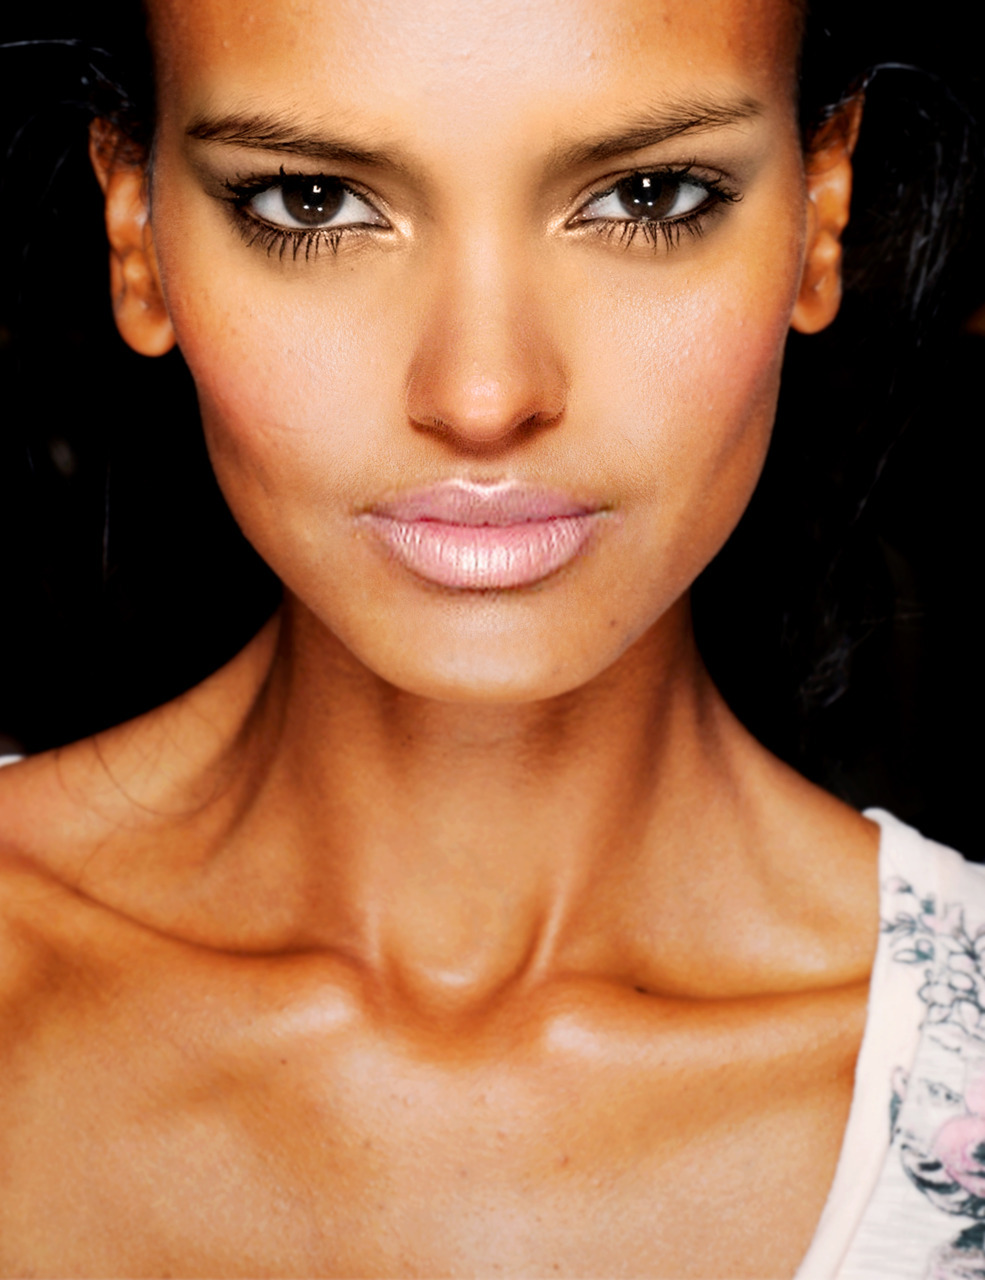 Base: Liya Kebede Eyes: Juana Burga Nose: Jourdan Dunn Mouth: Arlenis Sosa